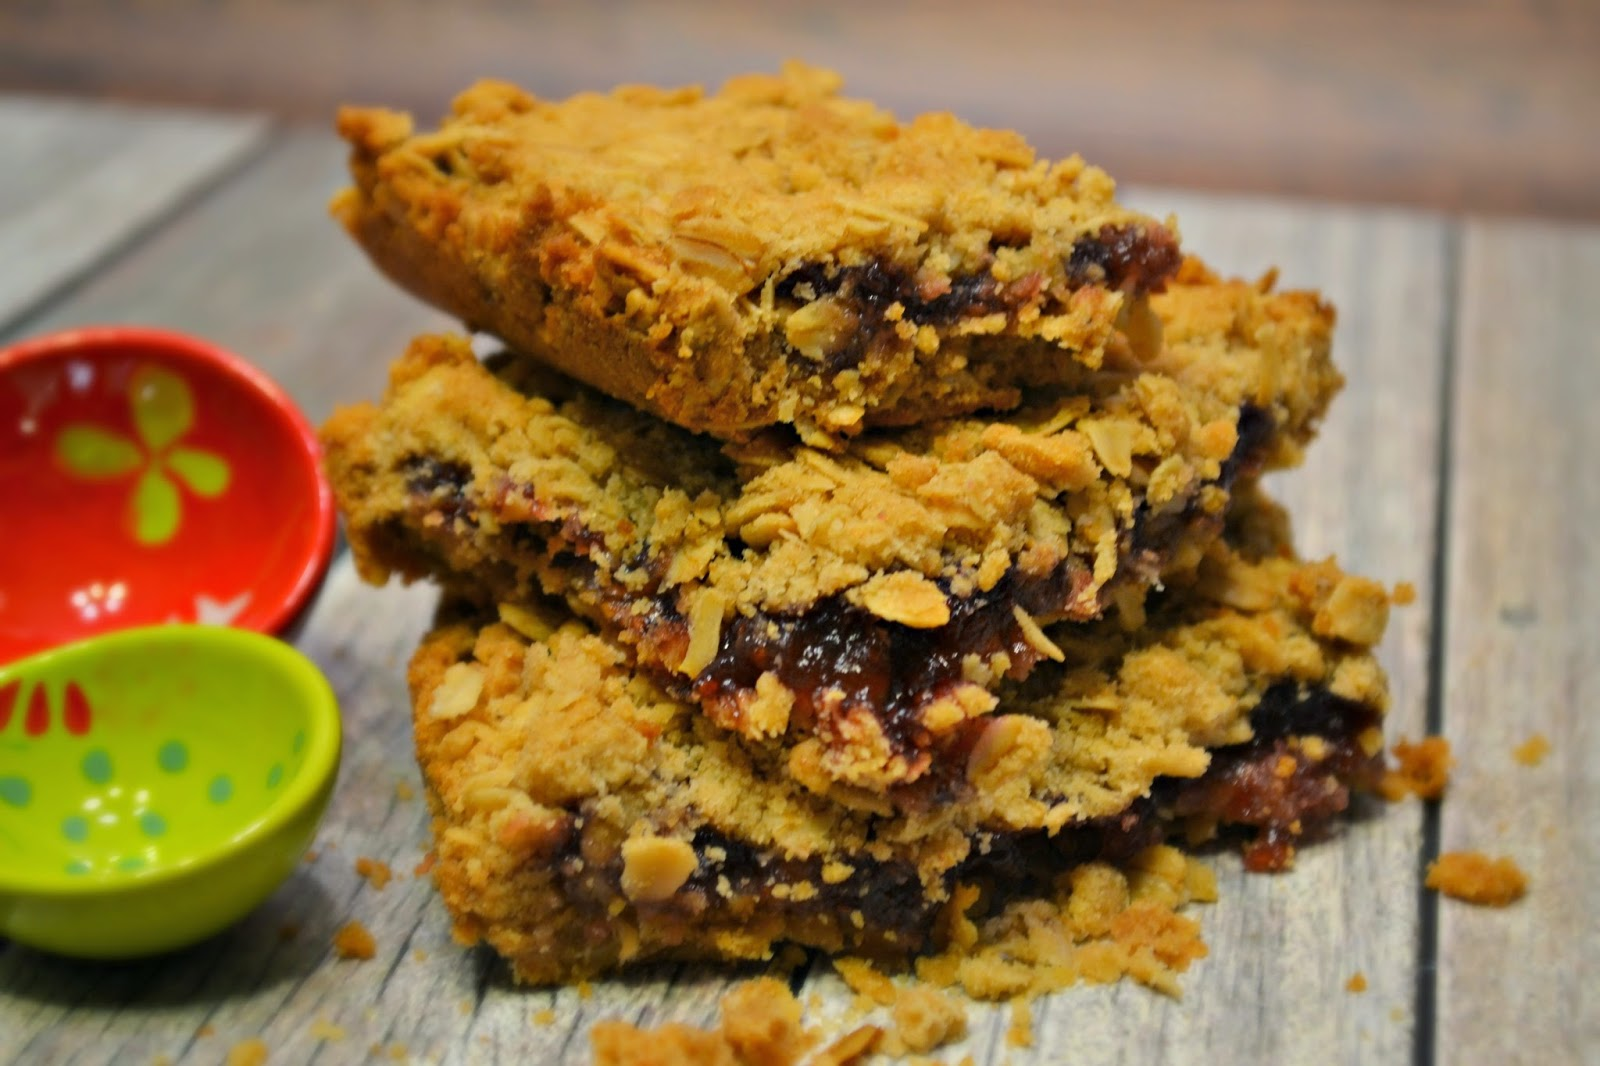 Raspberry Oatmeal Cookie Bar #Recipe & Wild Oats Prize Pack.  Oatmeal Cookie Bar recipe.  Recipes with Raspberry Jam.  Raspberry cookies.  Oatmeal cookies.  Wild Oats Marketplace